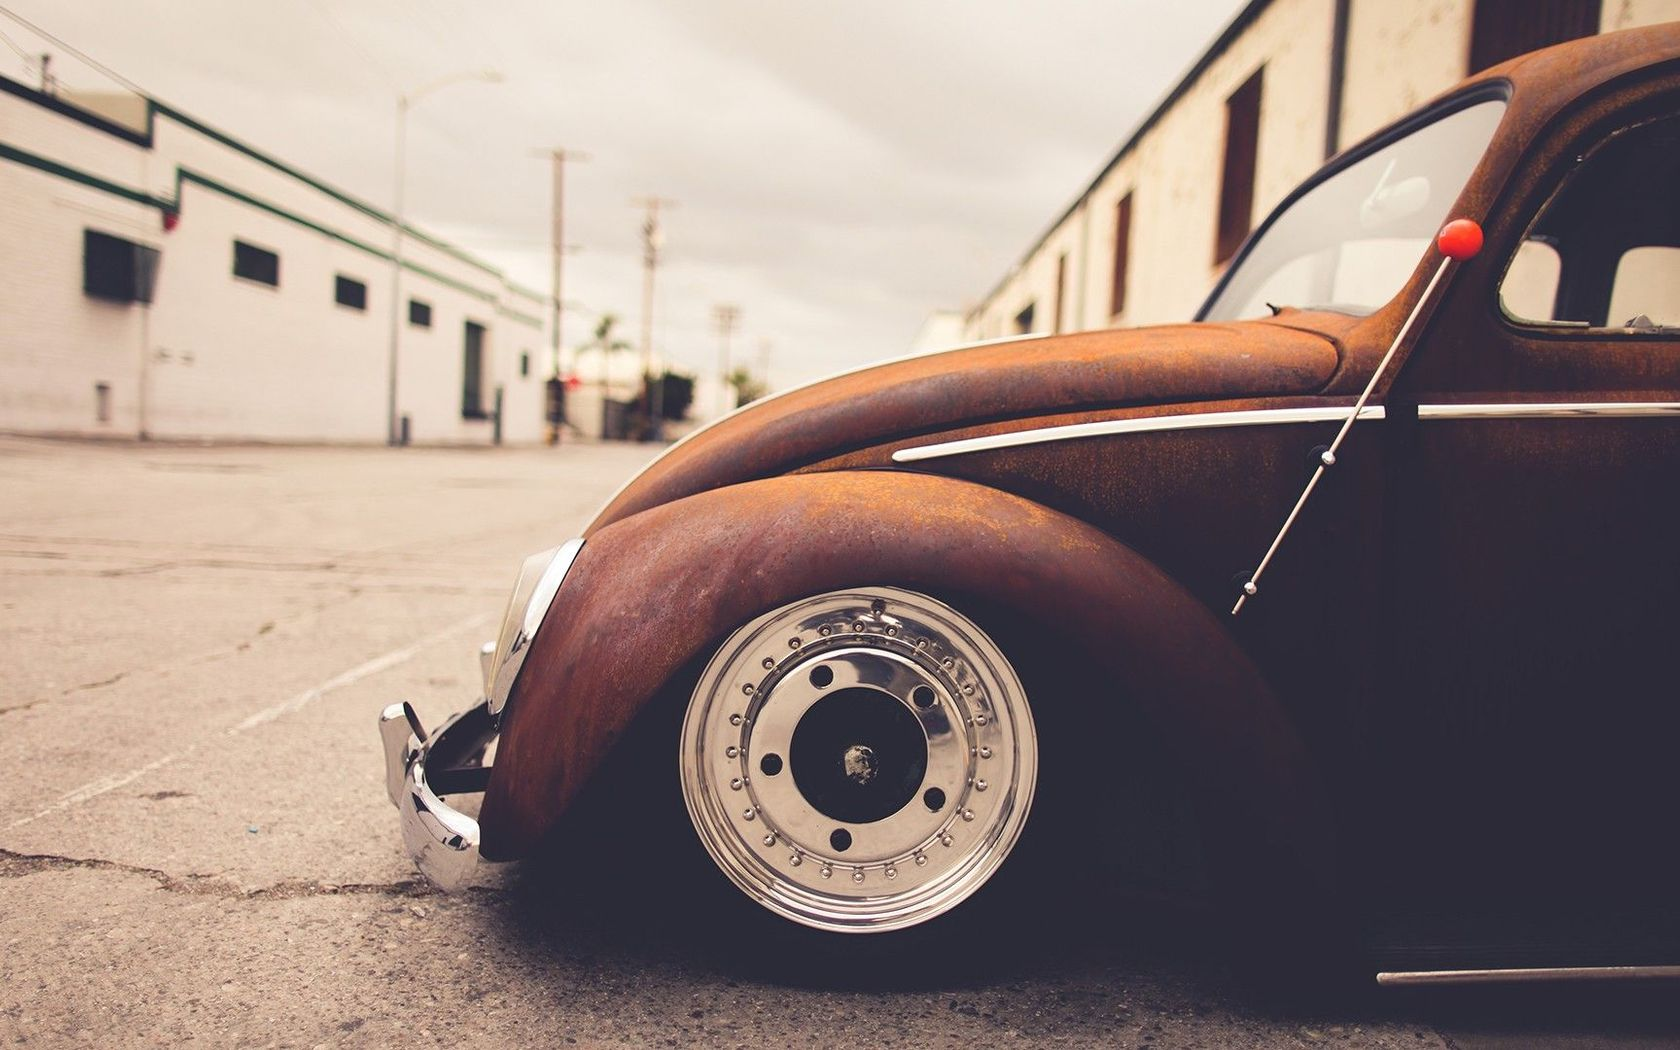 Download Rusty Volkswagen Beetle wallpaper 1680x1050